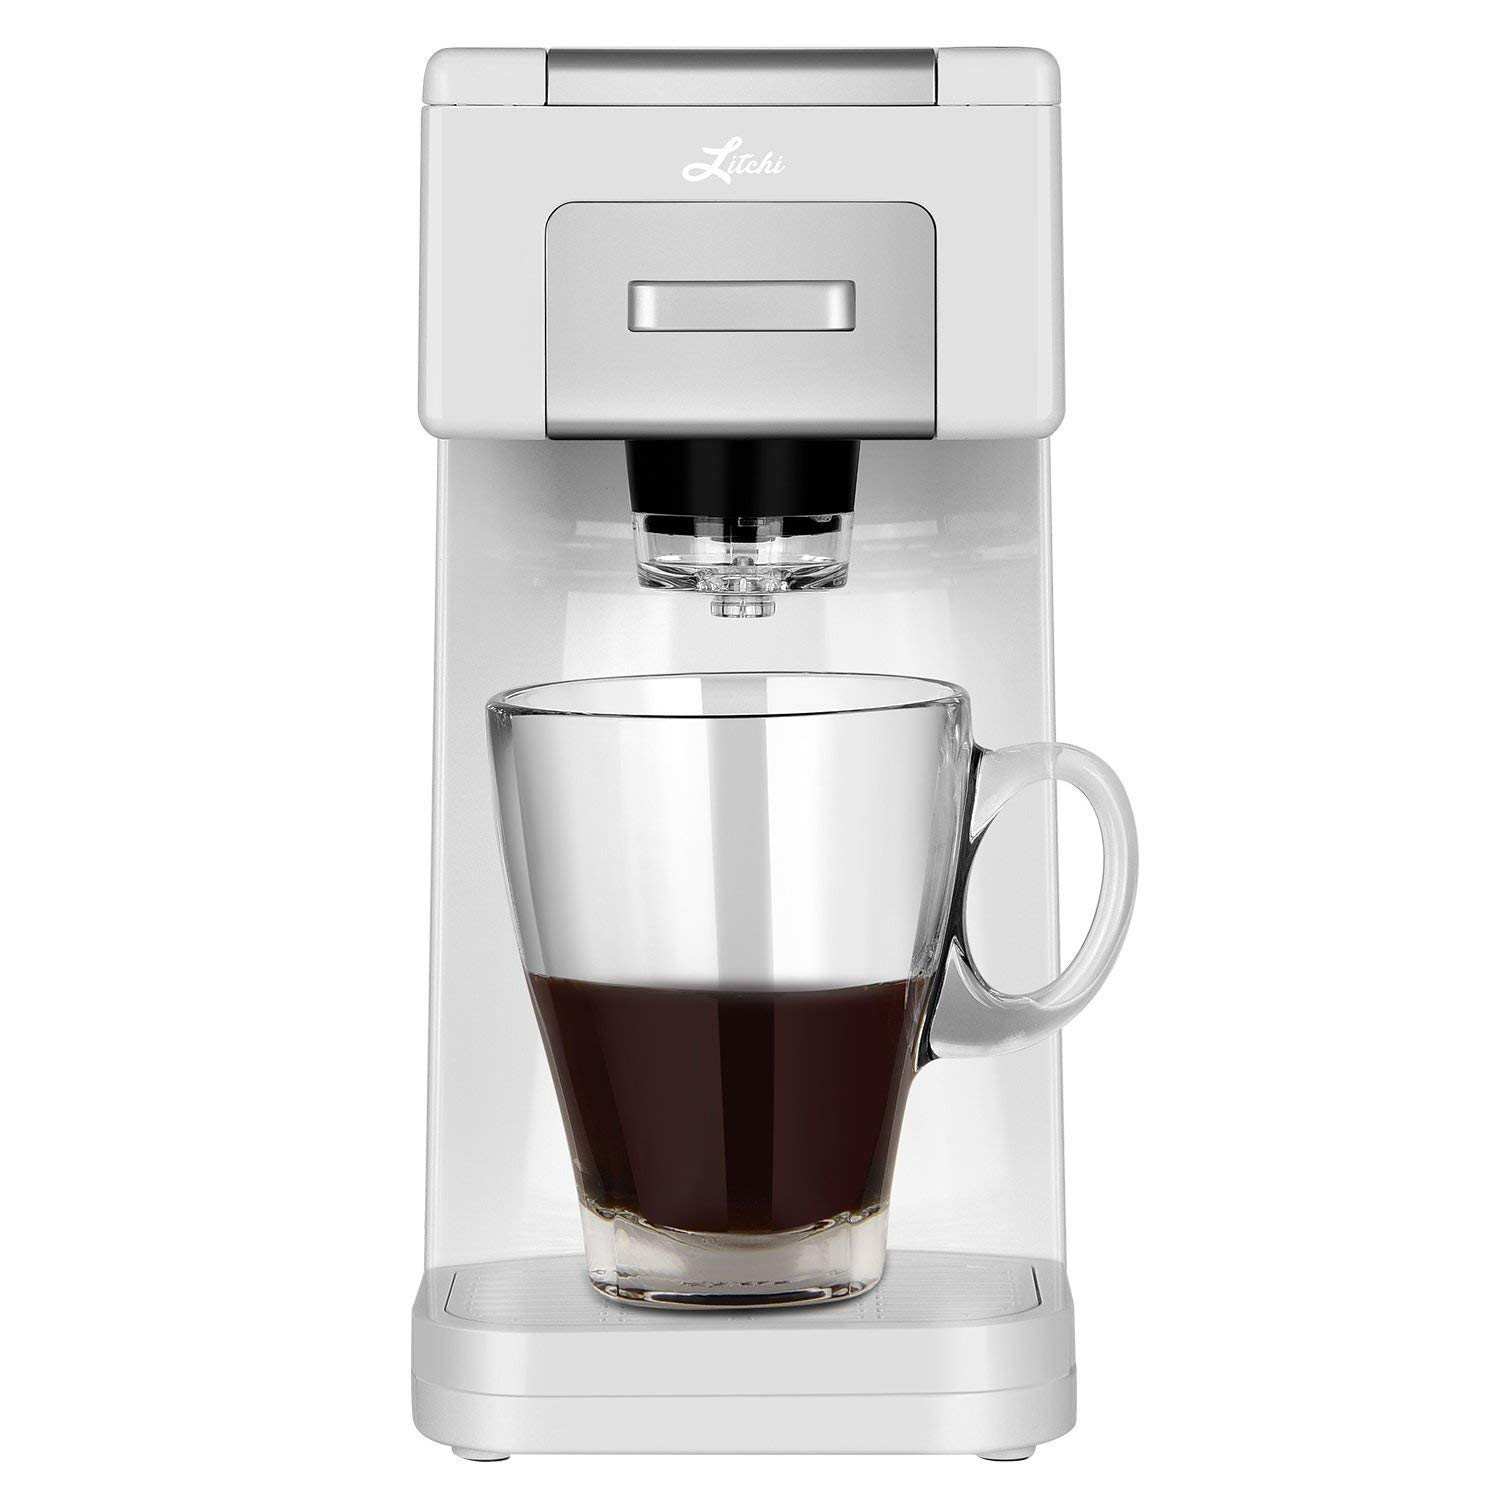 Litchi Single Serve Coffee Maker for Most Single Cup Pods Including K Cup Pods, Ground Coffee, 40 OZ Detachable Reservoir, 4 OZ, 8 OZ or Customized Brew Size (White F)